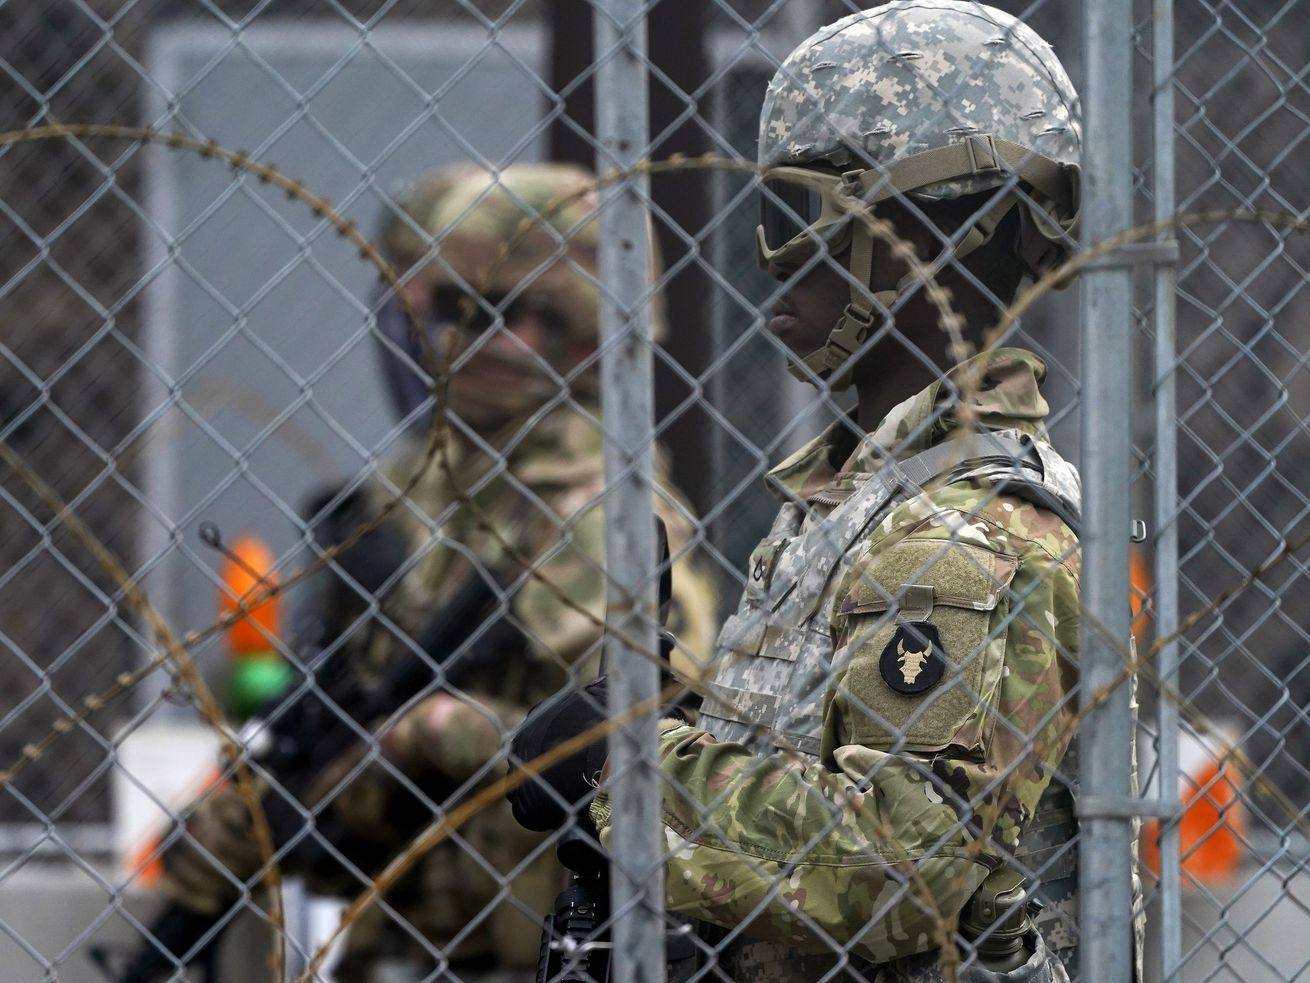 National Guard members are seen through fencing and wire near the Minneapolis Police 3rd Precinct in Minneapolis on Monday, April 19, 2021, after the murder trial against former Minneapolis police Officer Derek Chauvin advanced to jury deliberations.